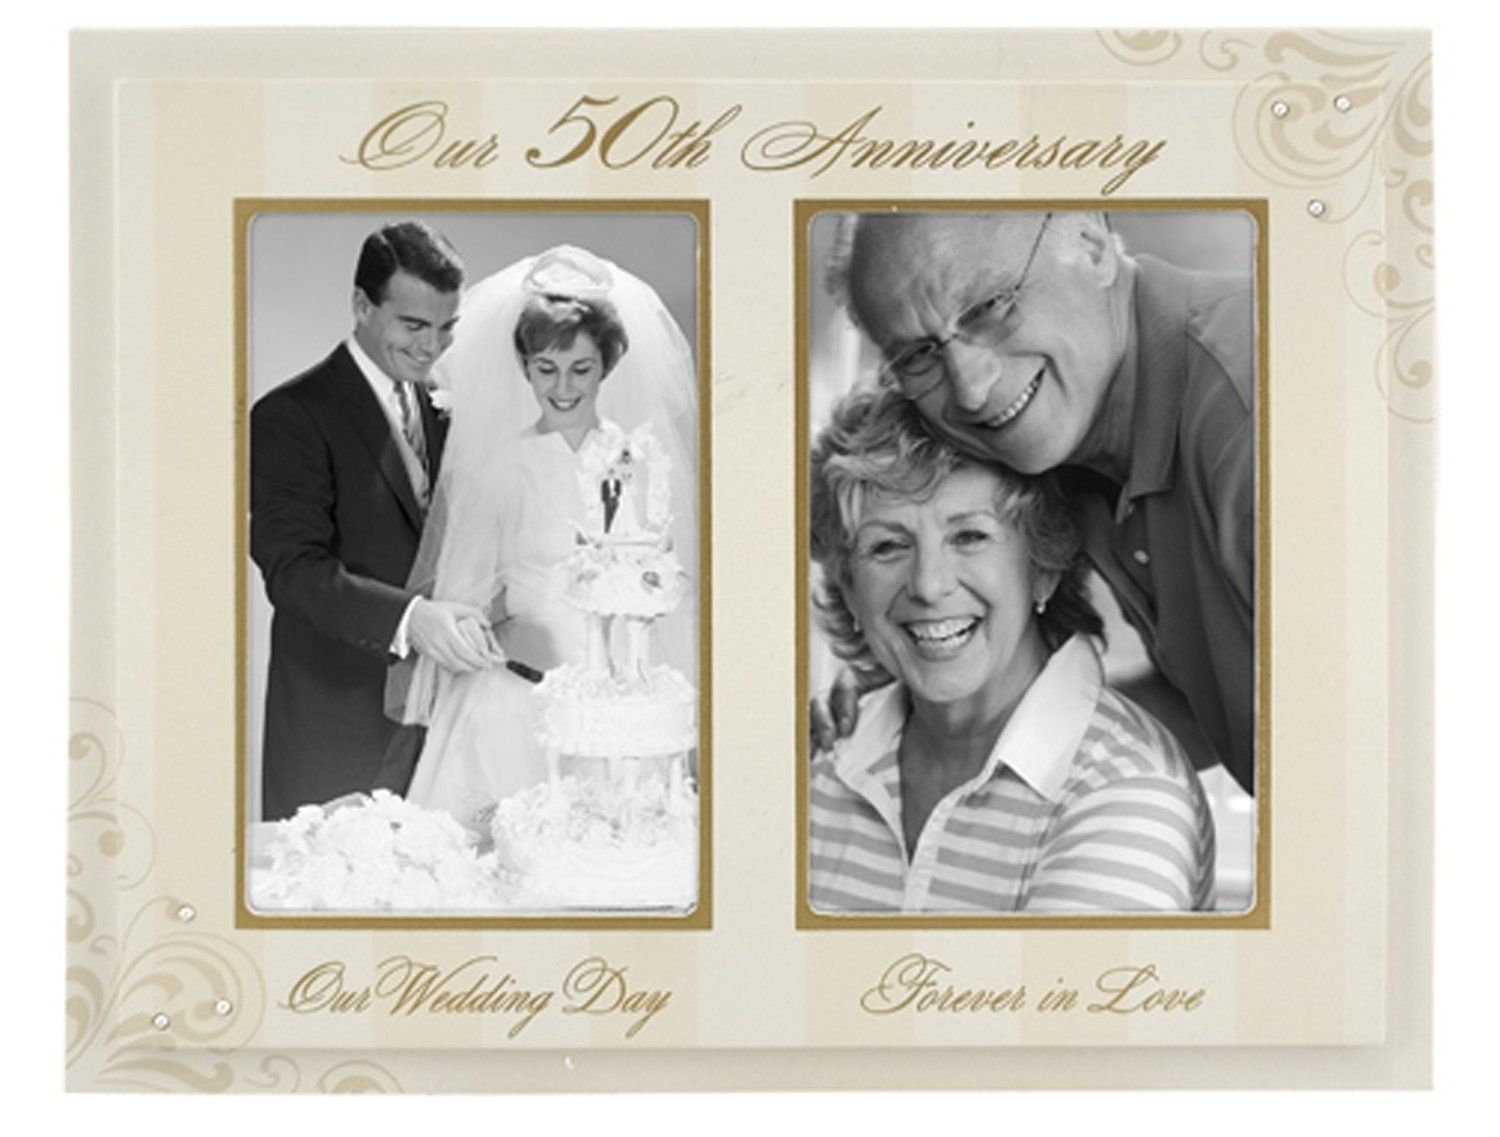 Gifts For Fiftieth Wedding Anniversary: 50th Wedding Anniversary Gift Ideas For